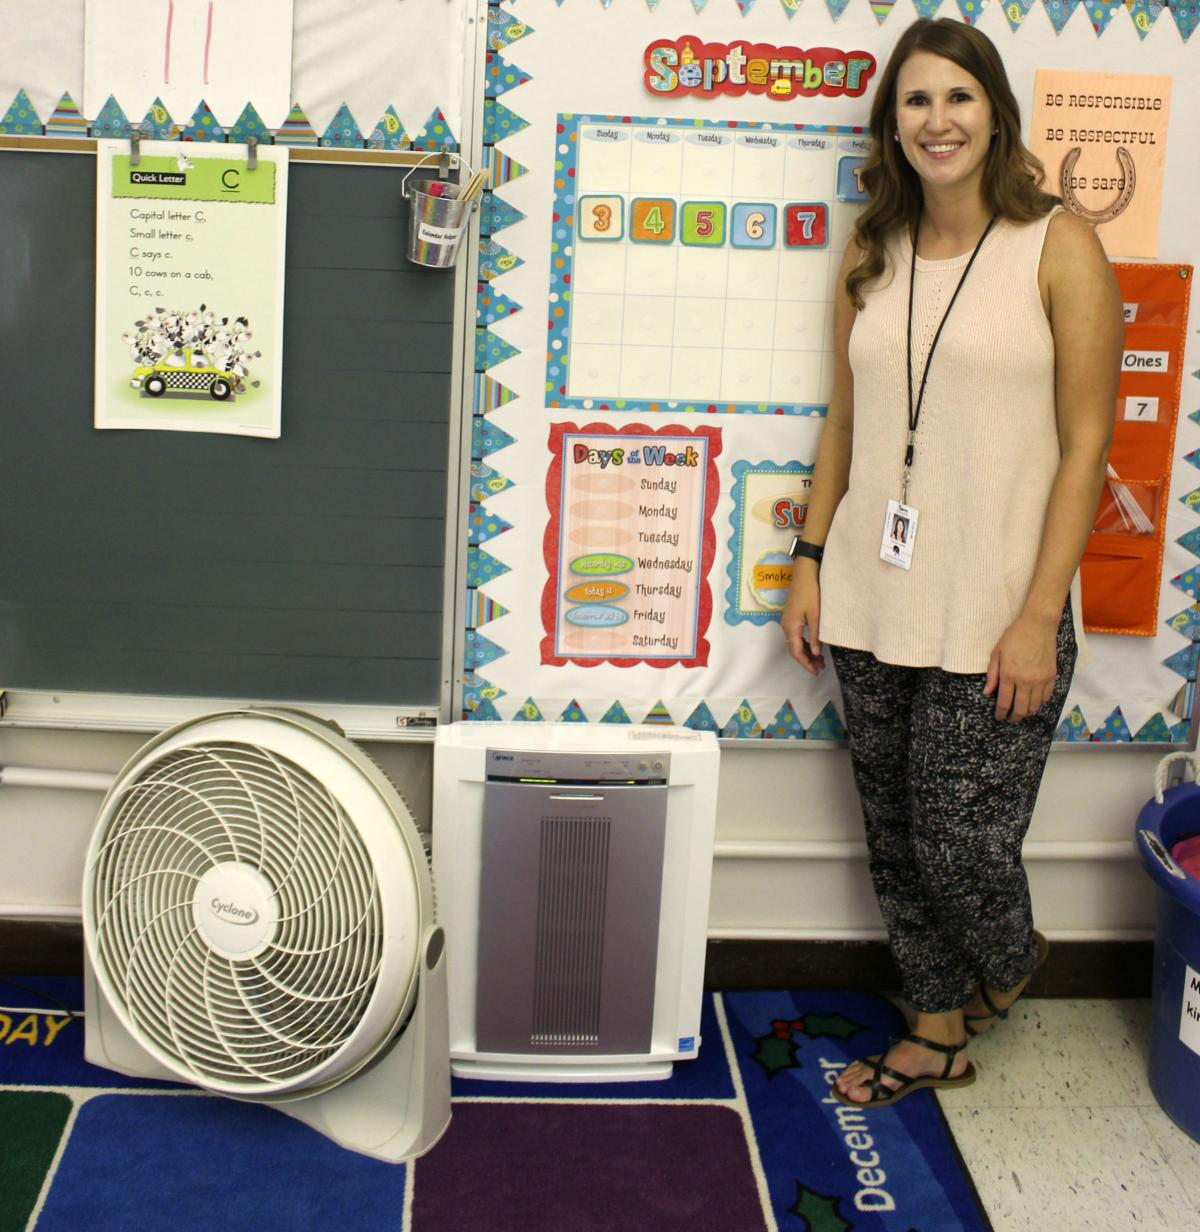 Frenchtown kindergarten teacher Justine Luebke shows off a brand new HEPA air filtration unit that will help purify the air in her classroom.